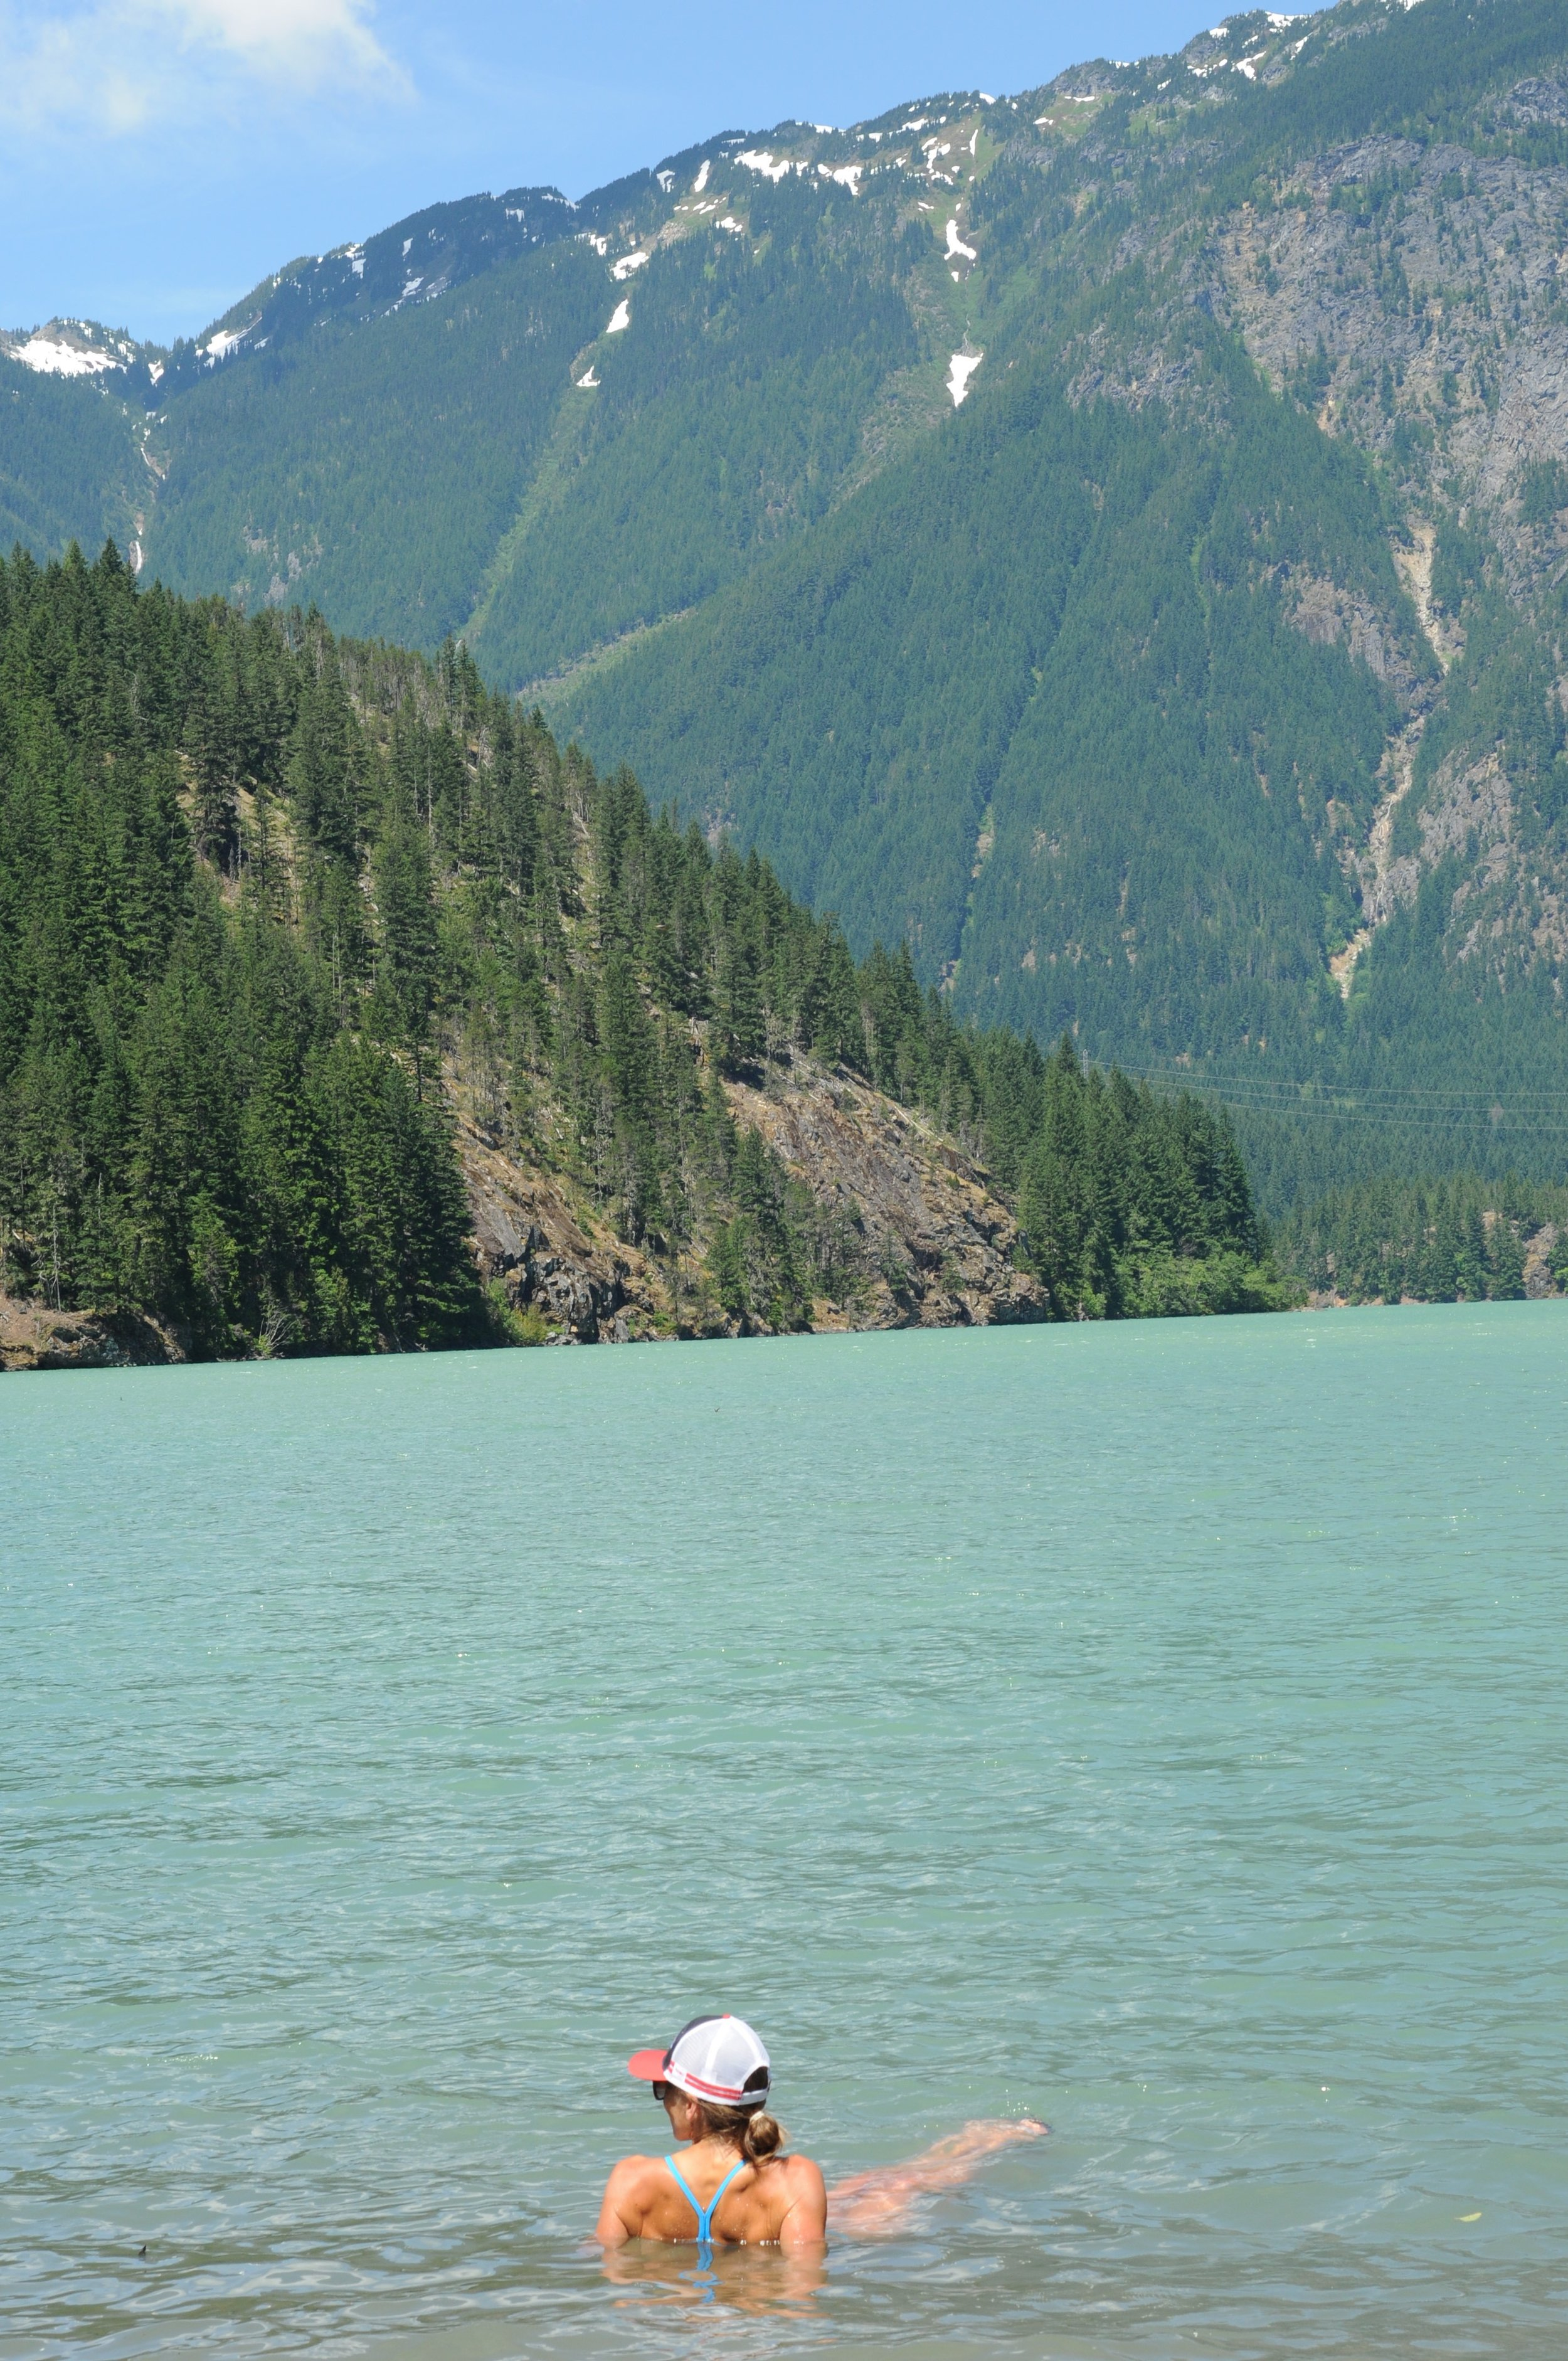 - Lakes make for GREAT showers and ice baths. Here I am in Diablo lake in North Cascades National Park in about 40 degree water trying to act